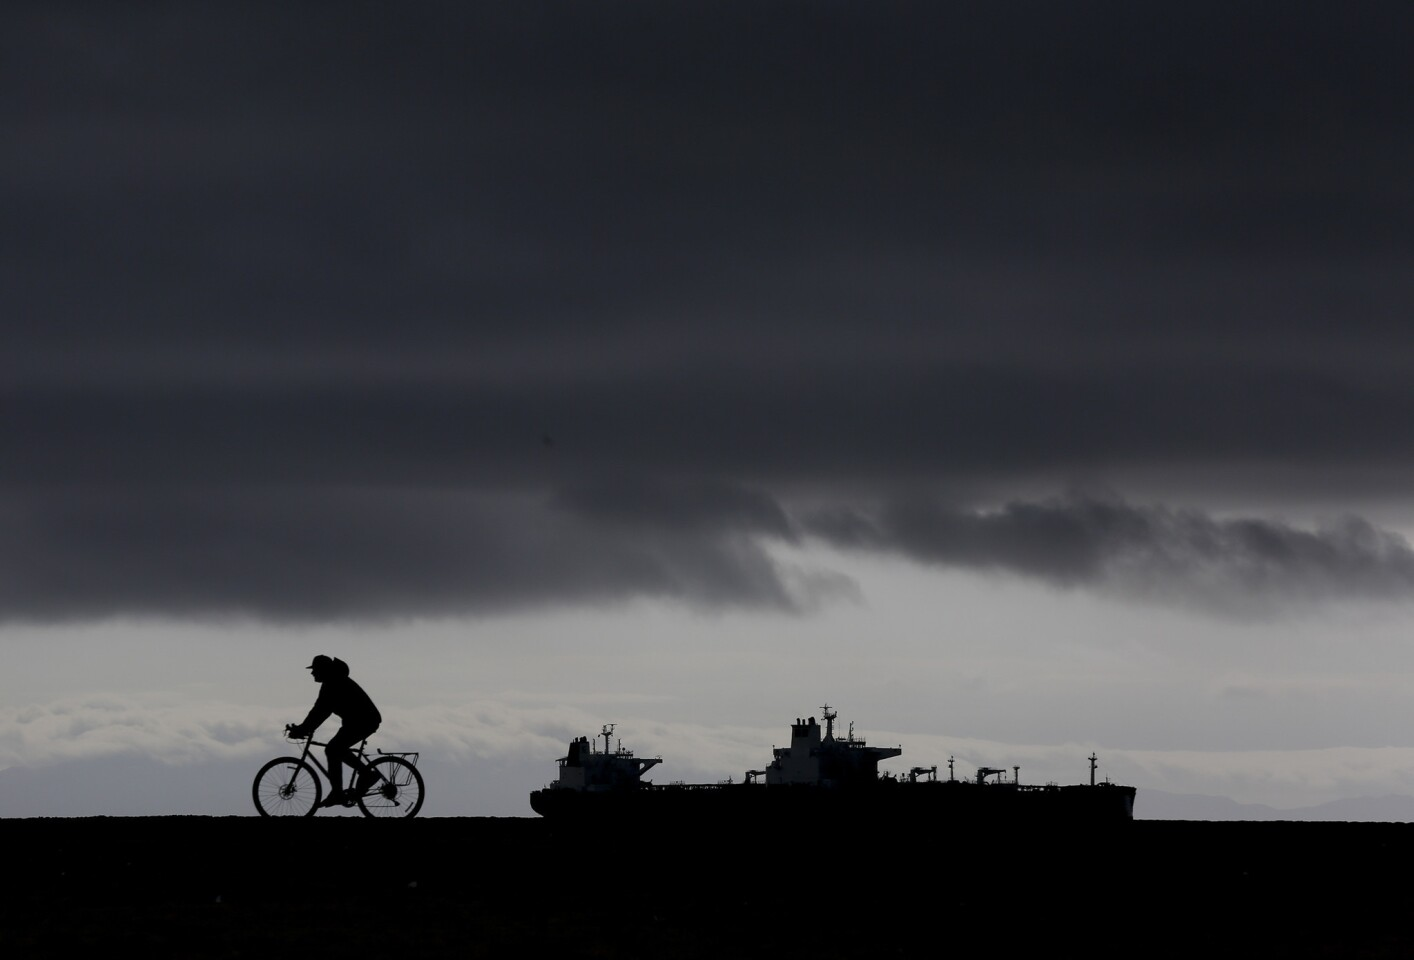 LONG BEACH,CA., FEBRUARY 7, 2017: rides along the boardwalk at Kite Beach in Long Beach after two days of storms brought heavy rains to Southern California.